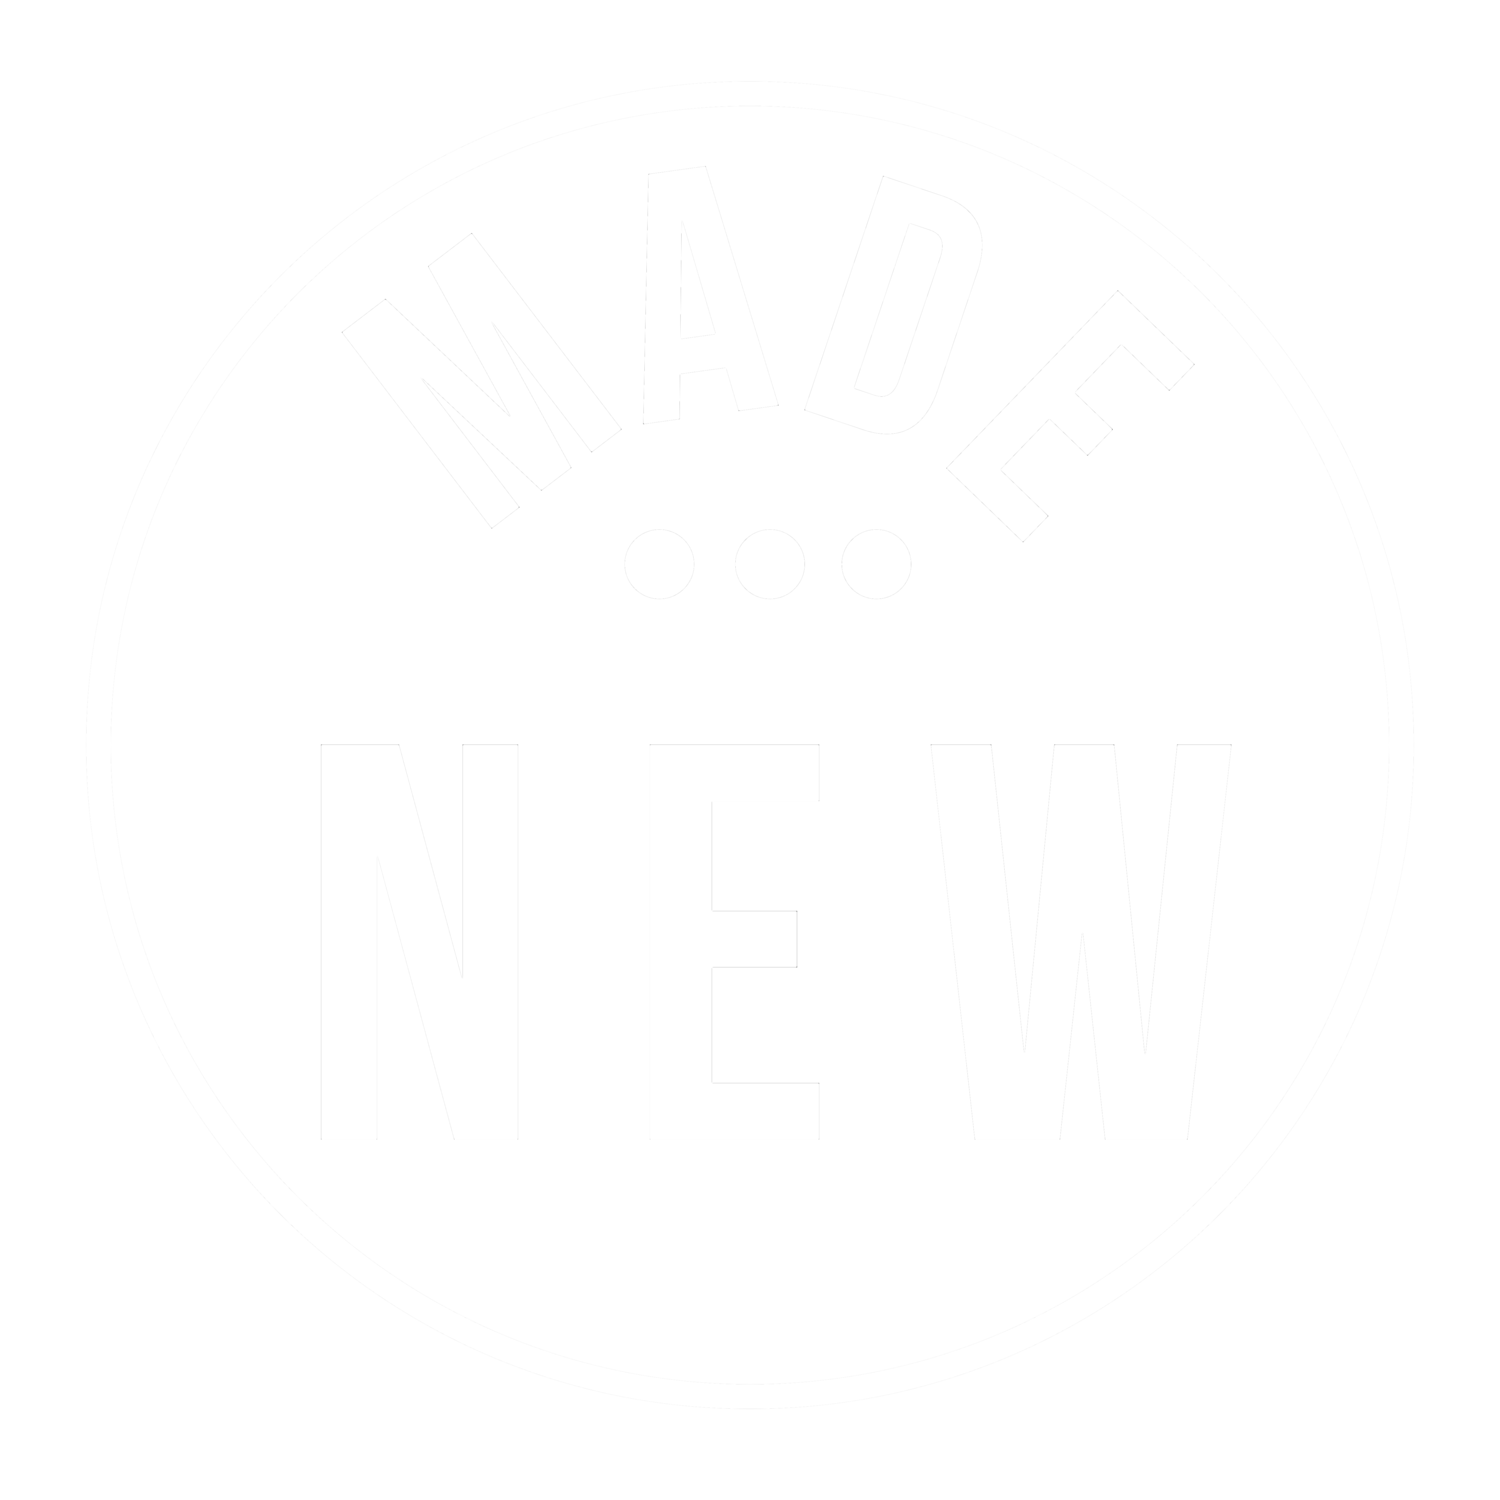 Made New // St. Louis